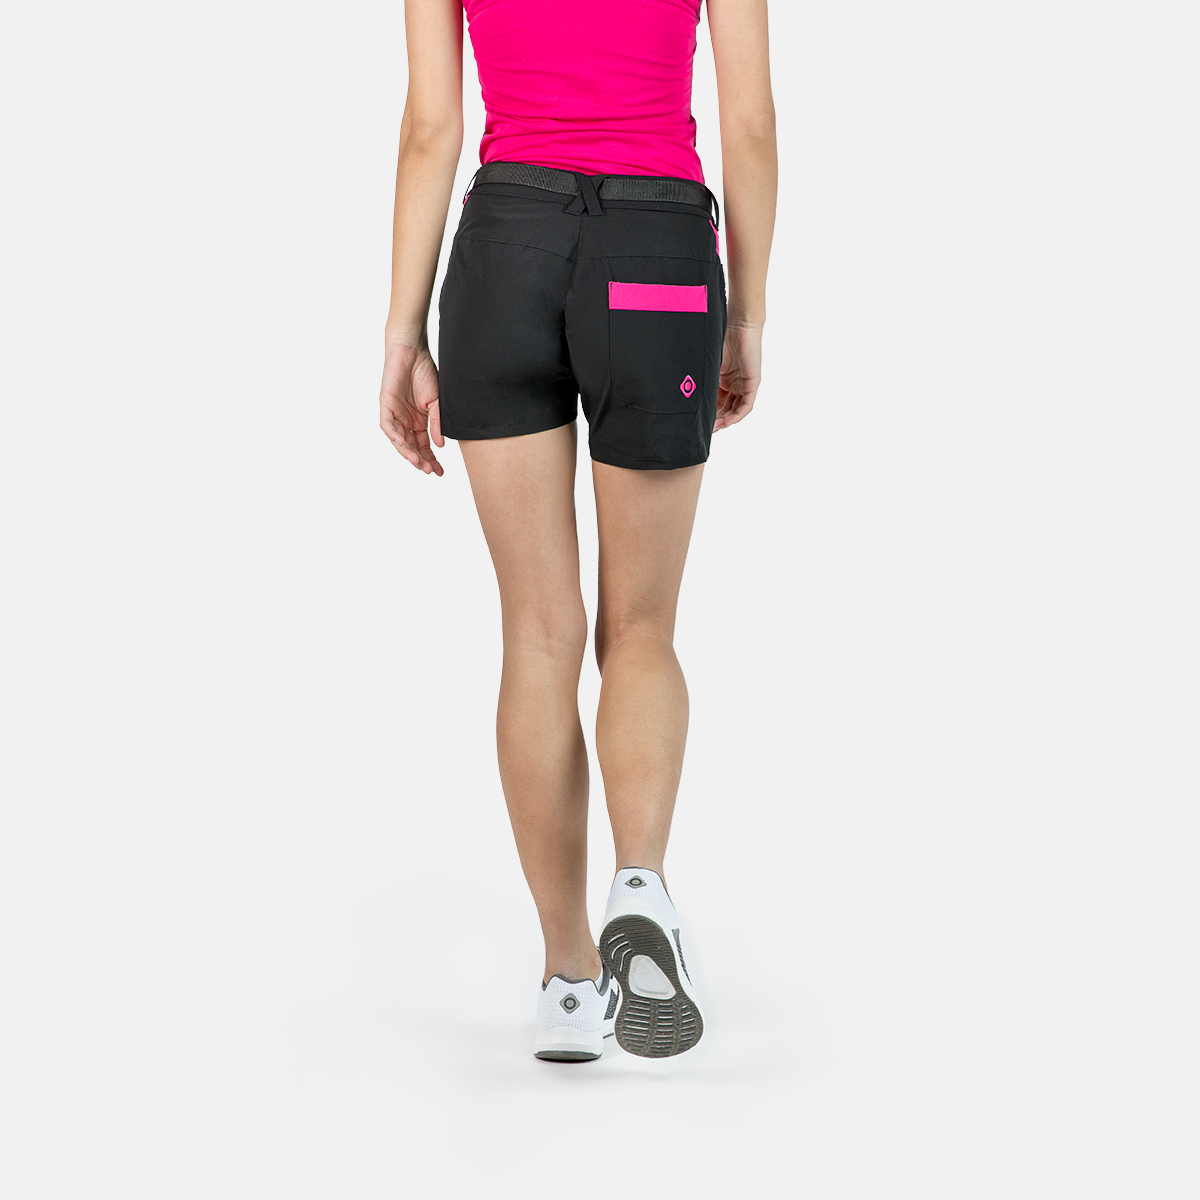 WOMAN'S CHARLOTTE MOUNT STRETCH SHORT BLACK